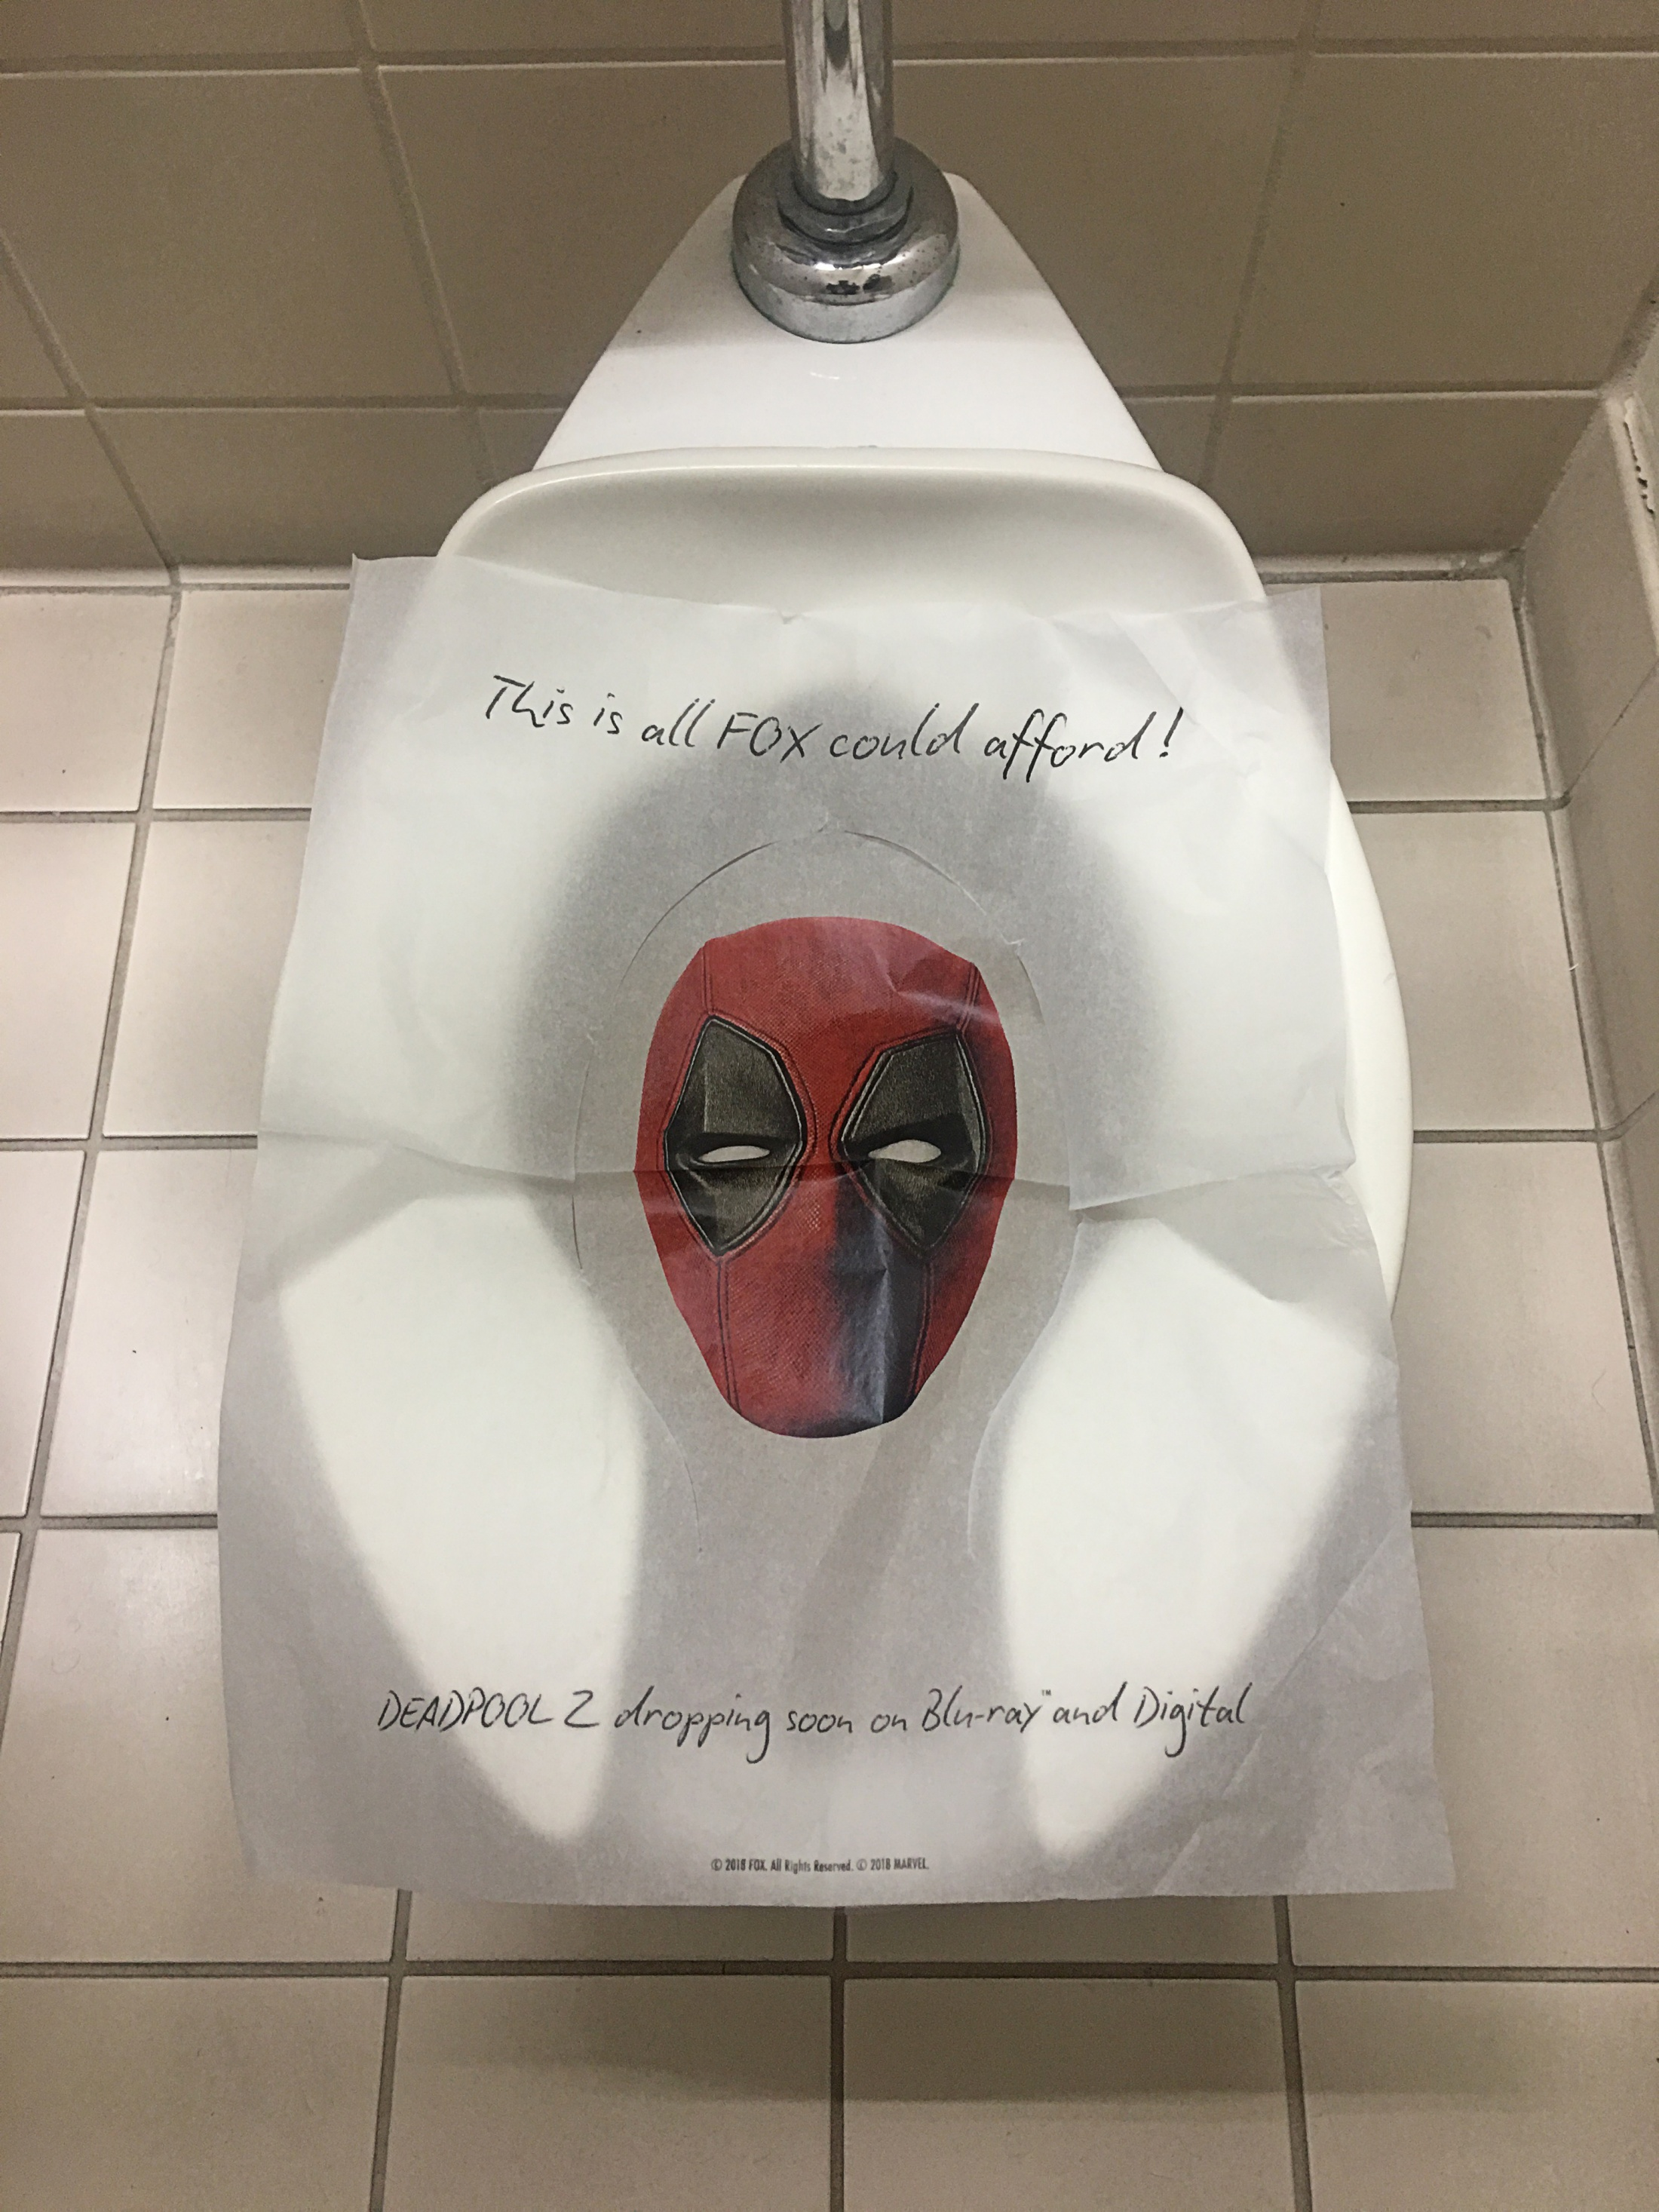 Thumbnail for Deadpool 2 Comic Con Toilet Seat Cover